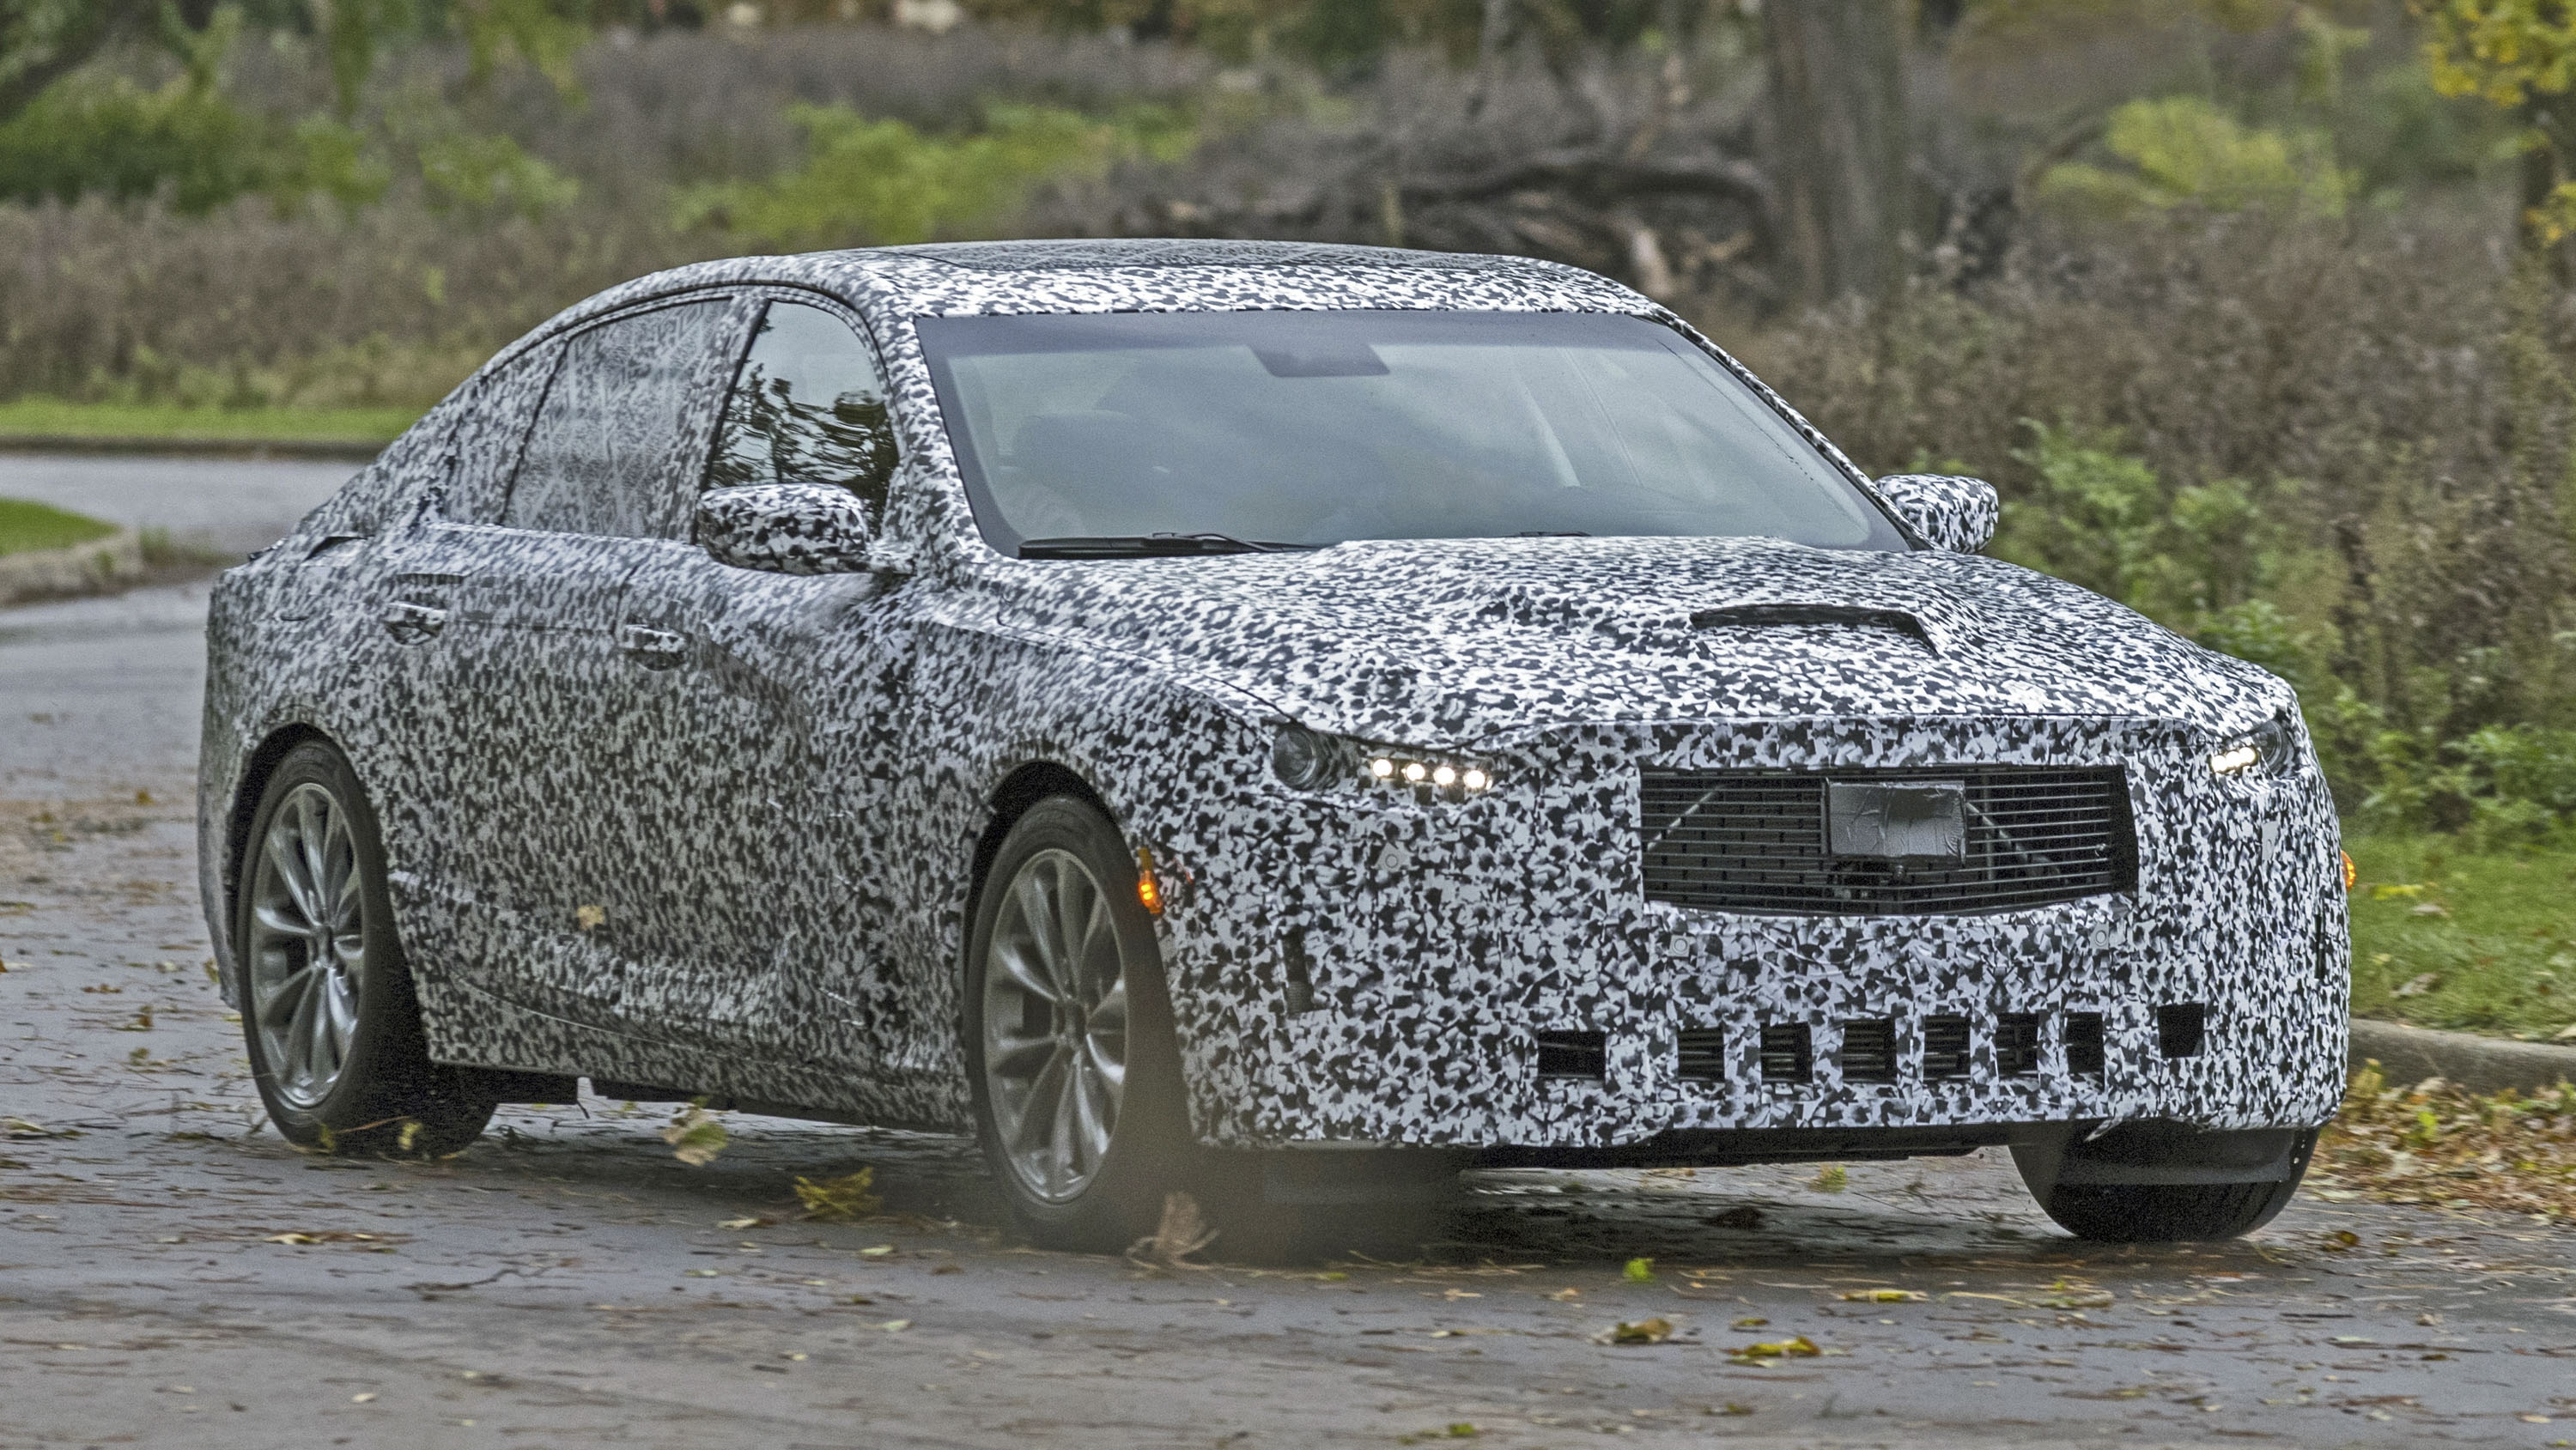 2020 Cadillac CT5 Spied For The First Time Pictures, Photos, Wallpapers. | Top Speed